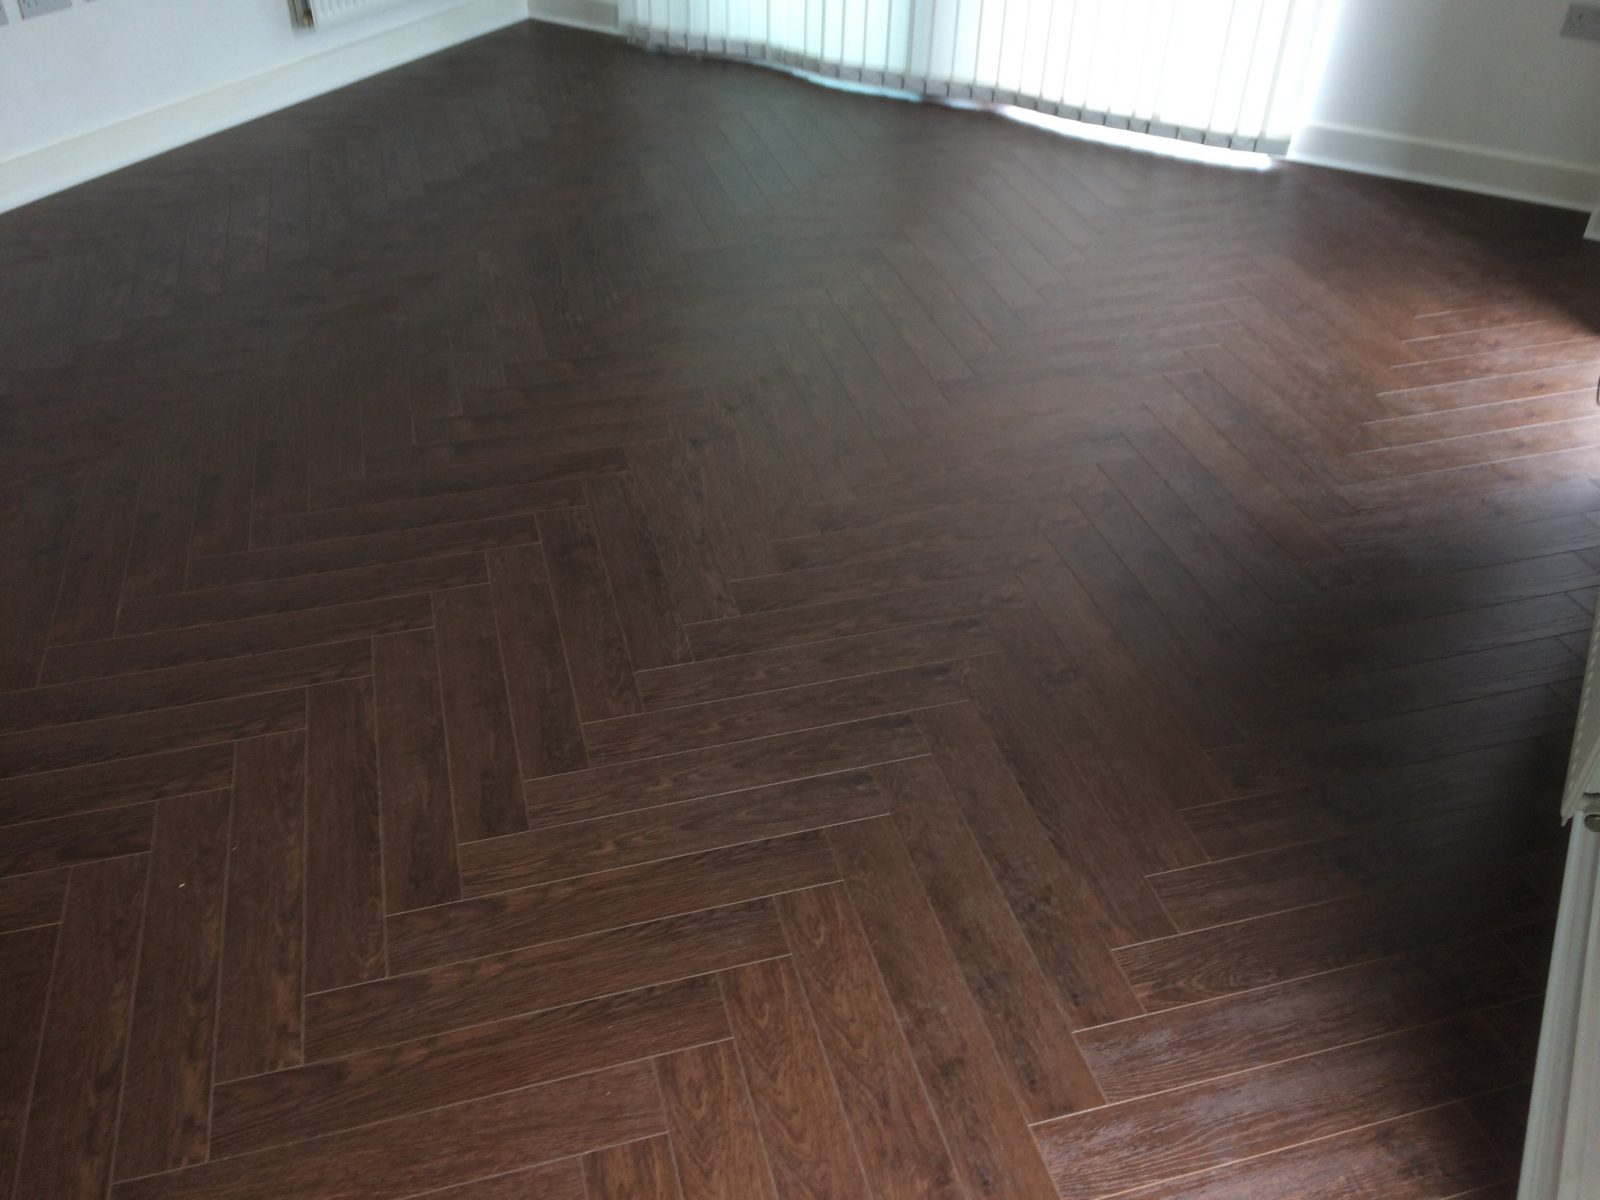 Laminated Walnut Herringbone Wood Blocks London Stock